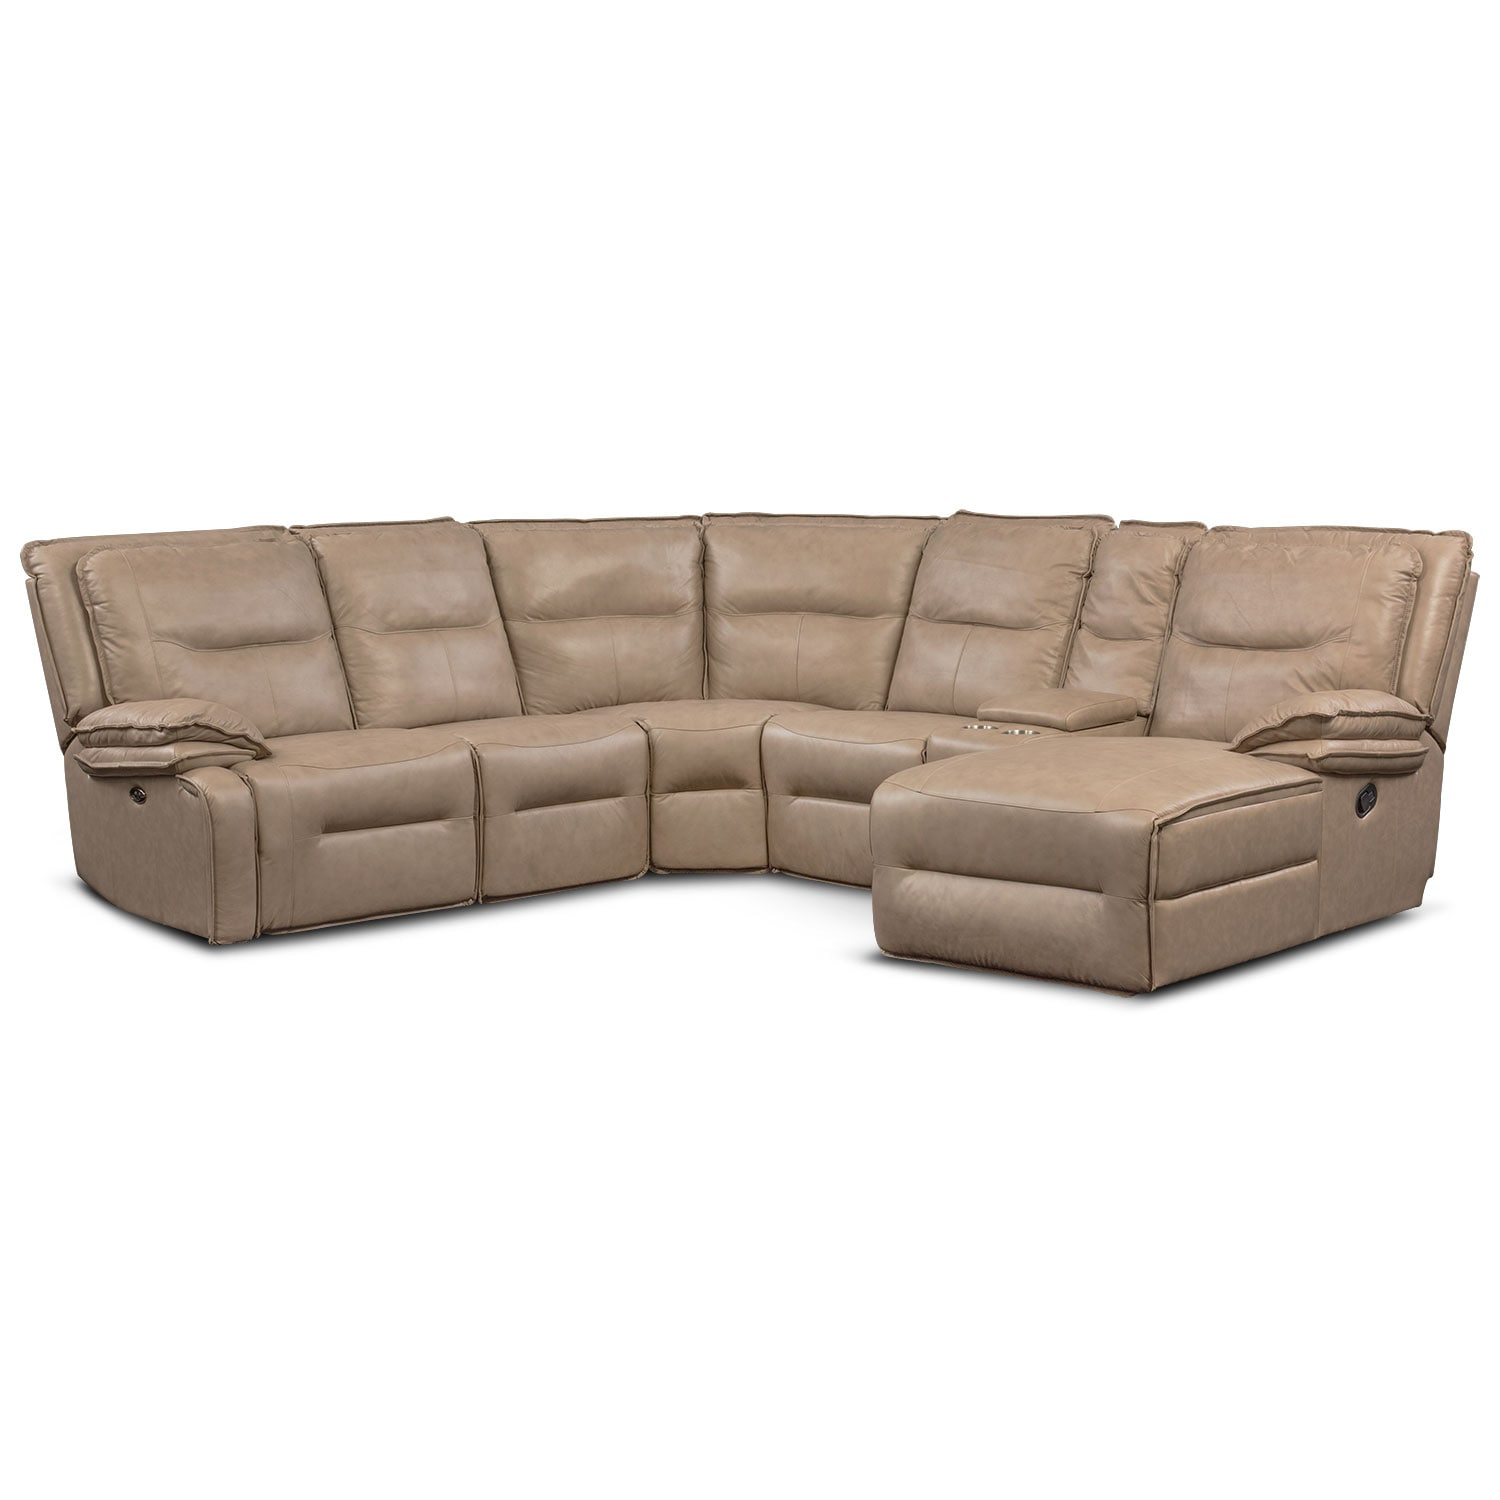 Nikki 6-Piece Power Reclining Sectional with 2 Recliners and Right-Facing Chaise - Taupe